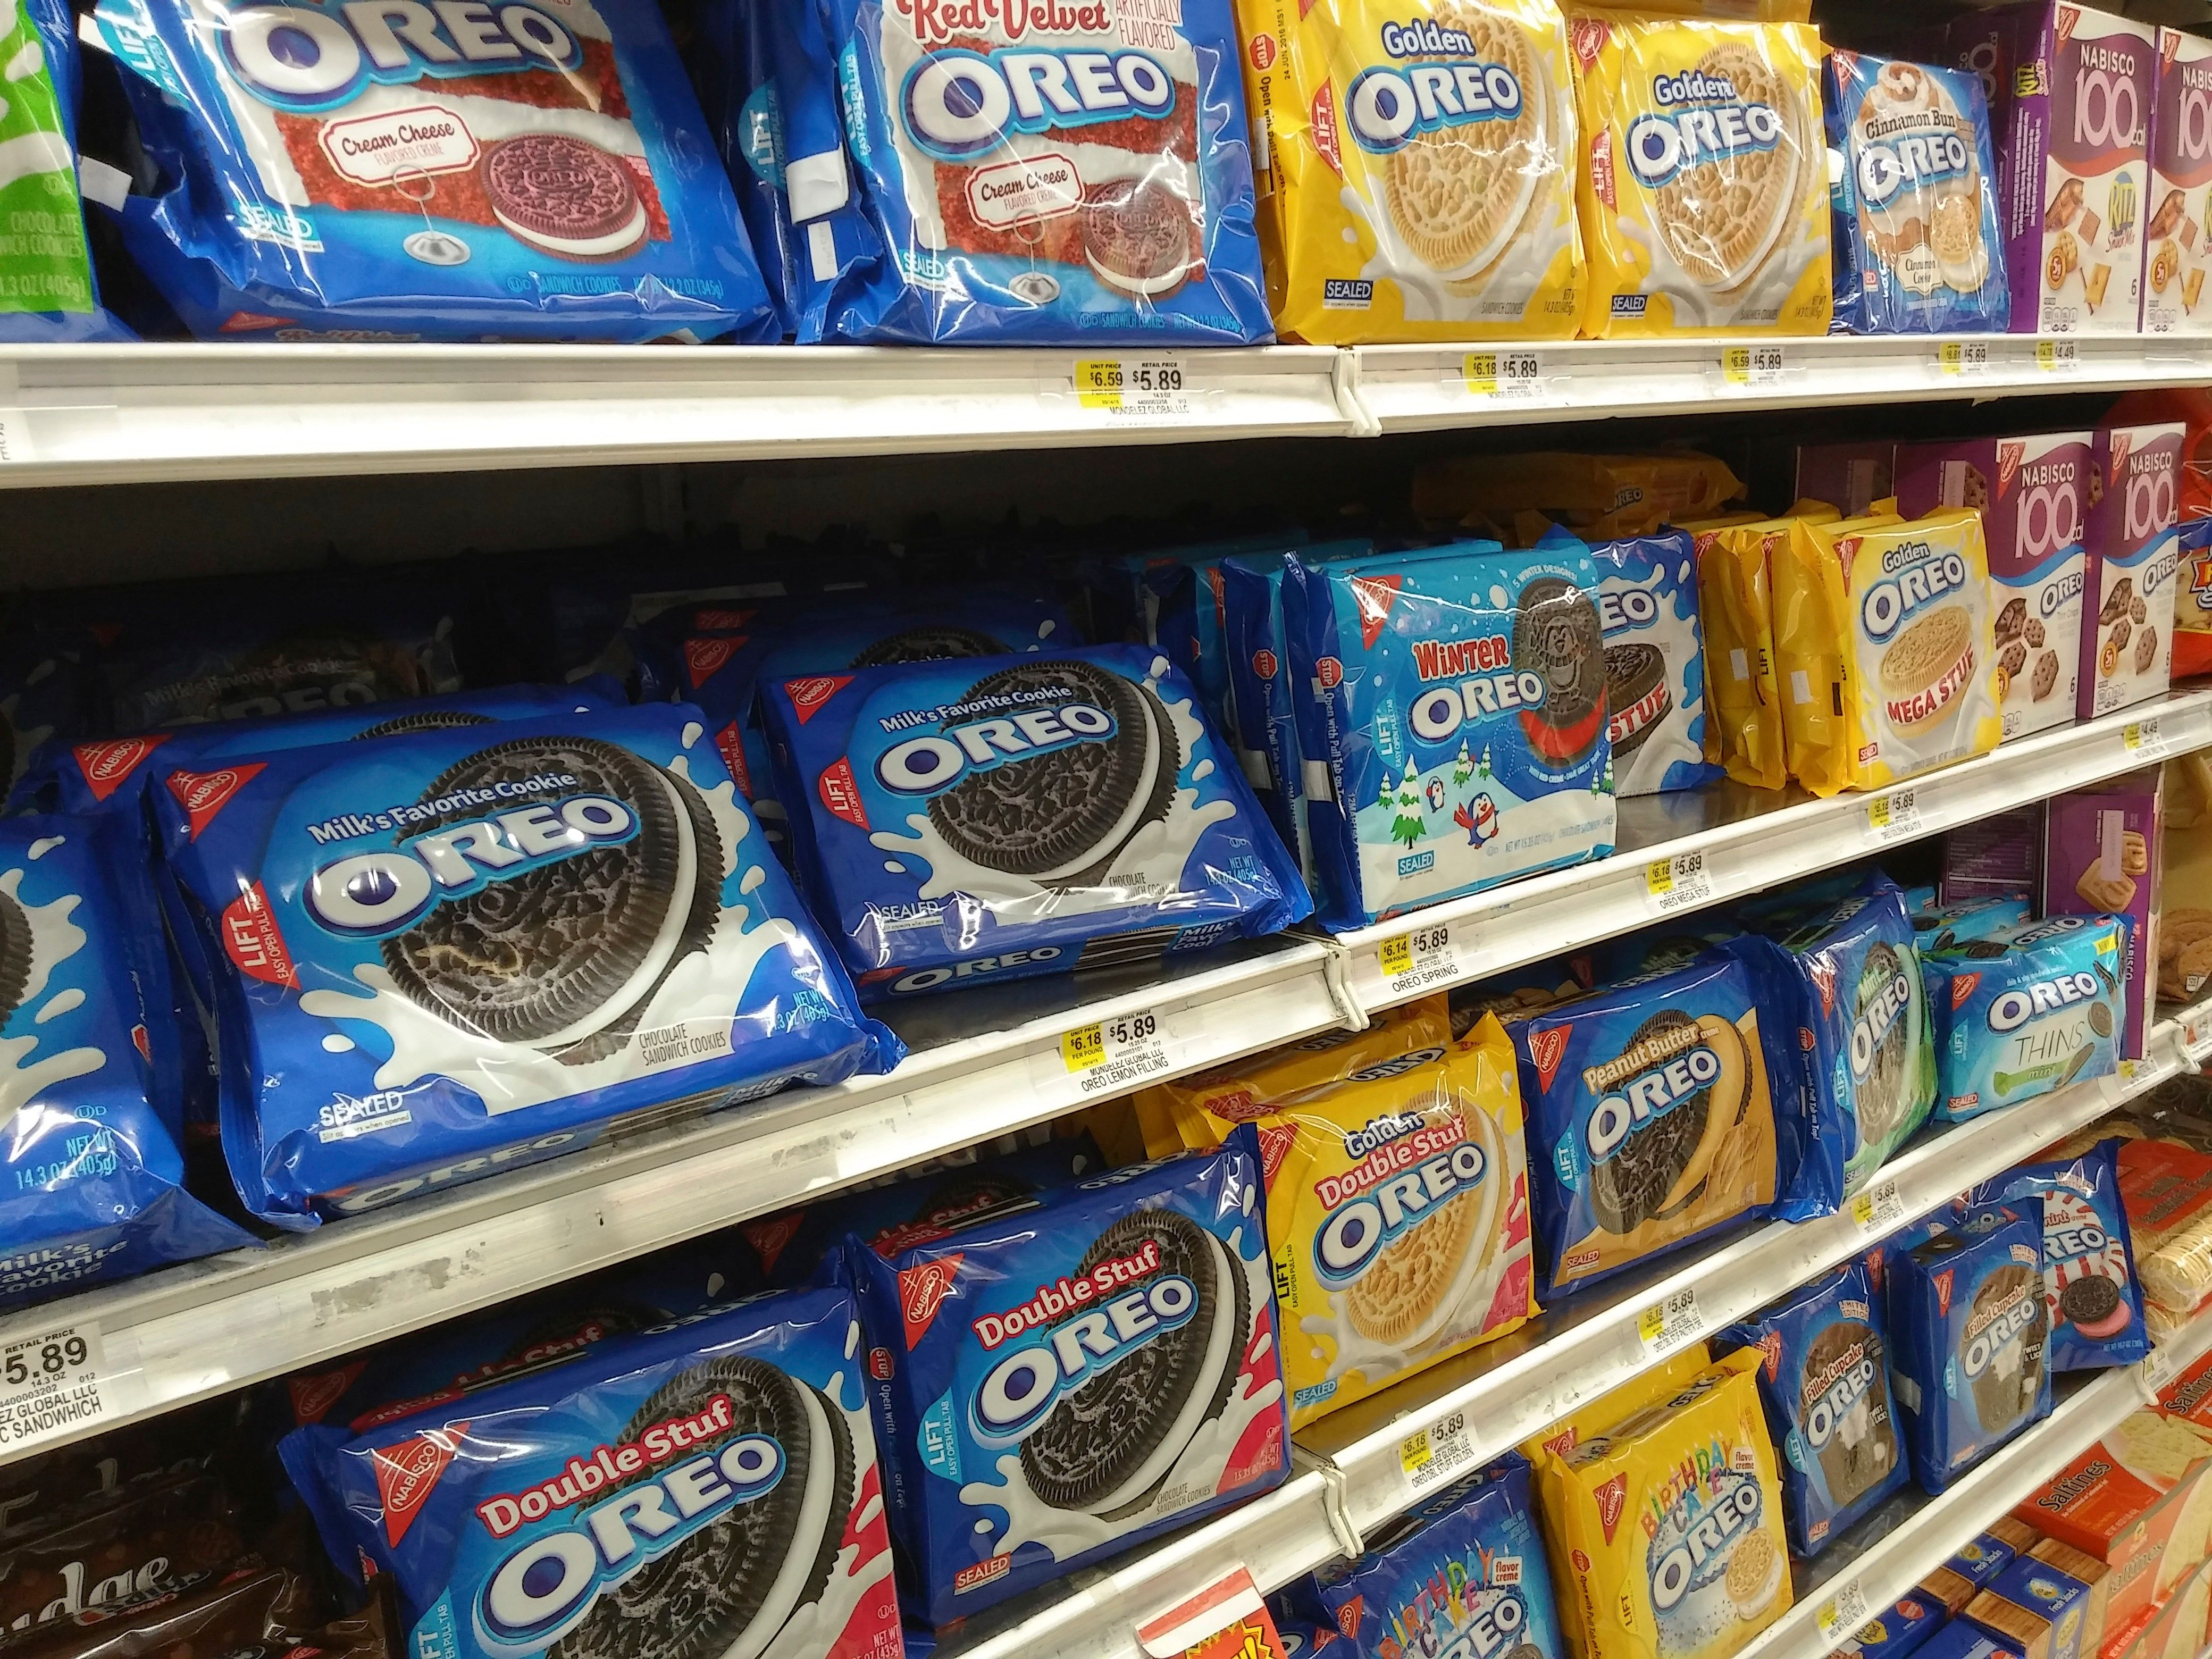 Boxes of Nabisco's Oreo Cookies in multiple yummy flavors on a supermarket shelf in New York on Tuesday, March 15, 2016. The company has upped the ante for cookie lovers by coming out with multiple flavors of the milk and cookie staple. (© Richard B. Levine) (Photo by Richard Levine/Corbis via Getty Images)